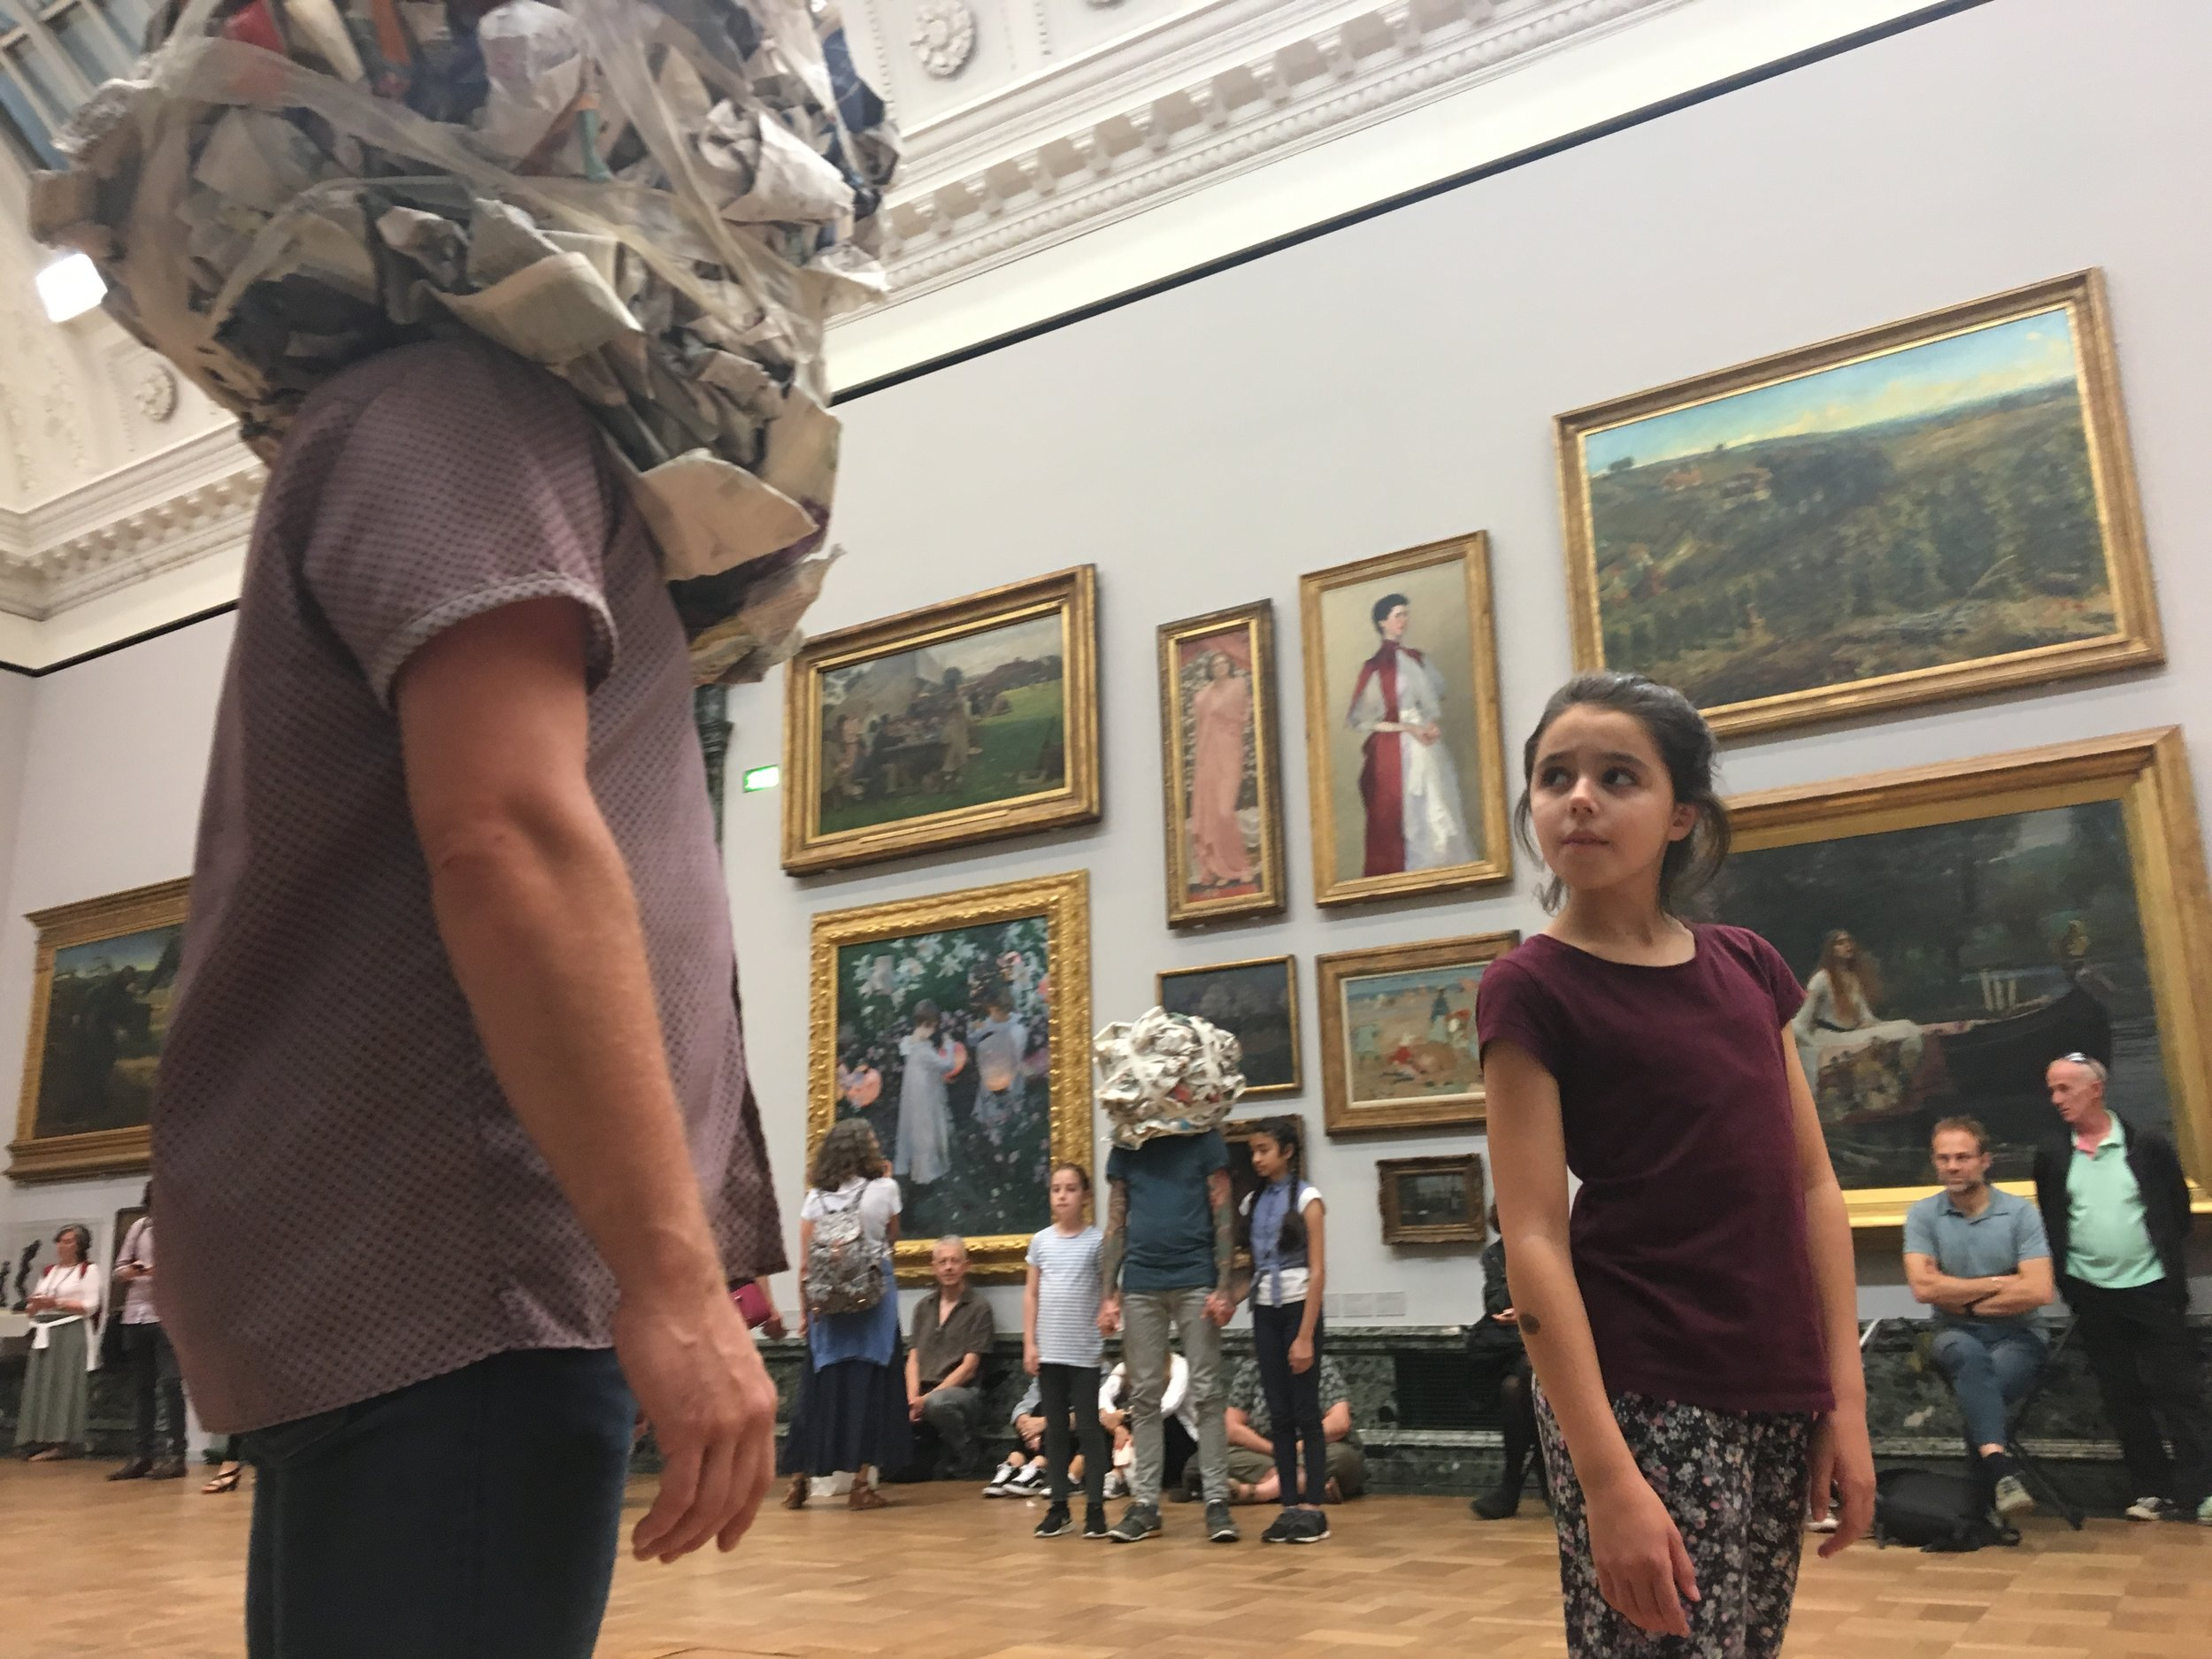 All images taken by me, Benjamin Yeoh (c) at Tate Britain.